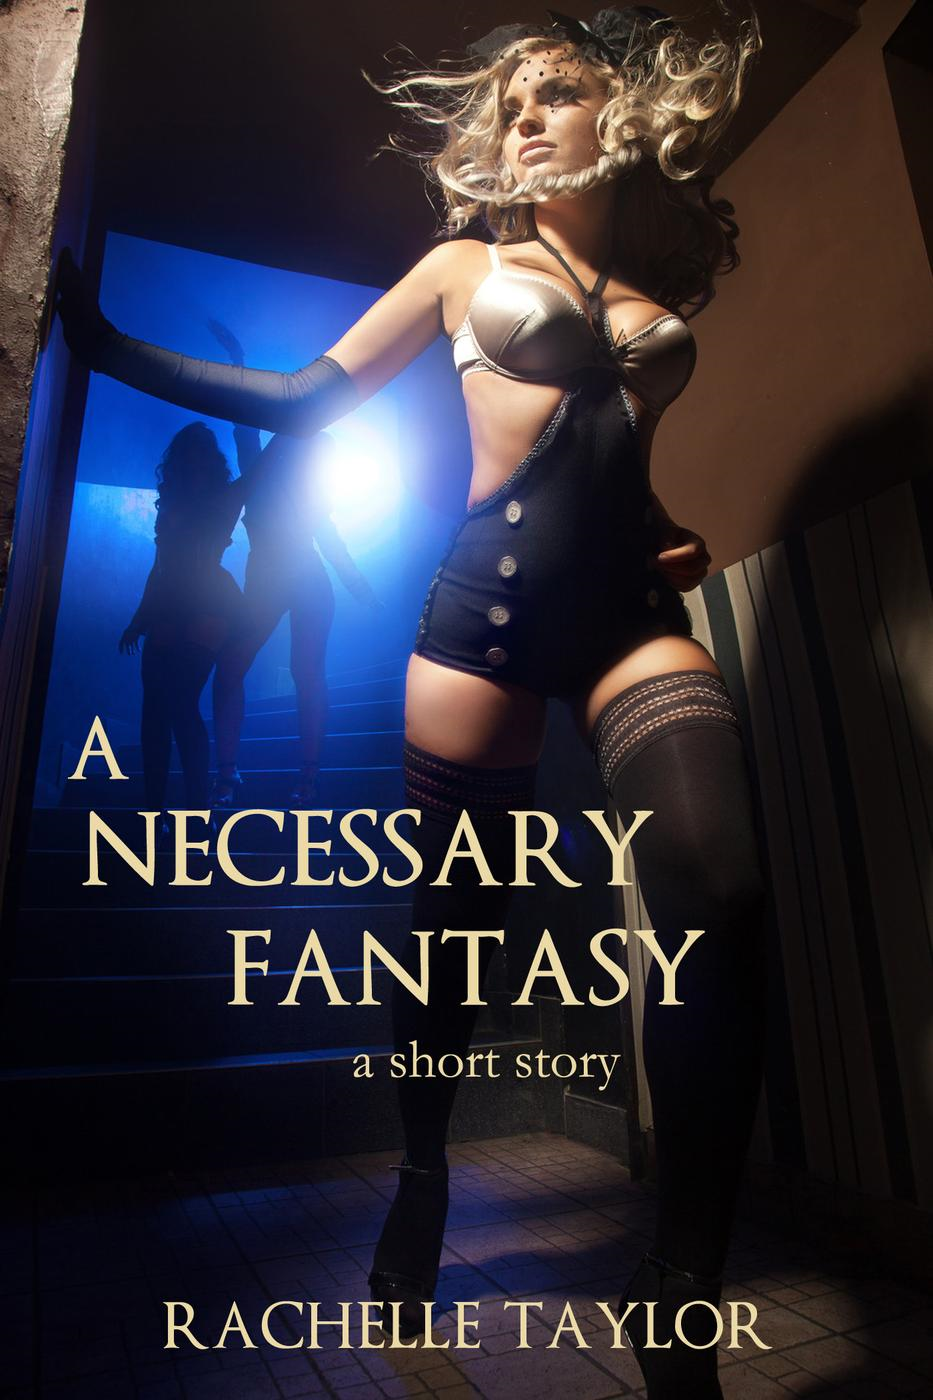 A Necessary Fantasy (A Short Story)